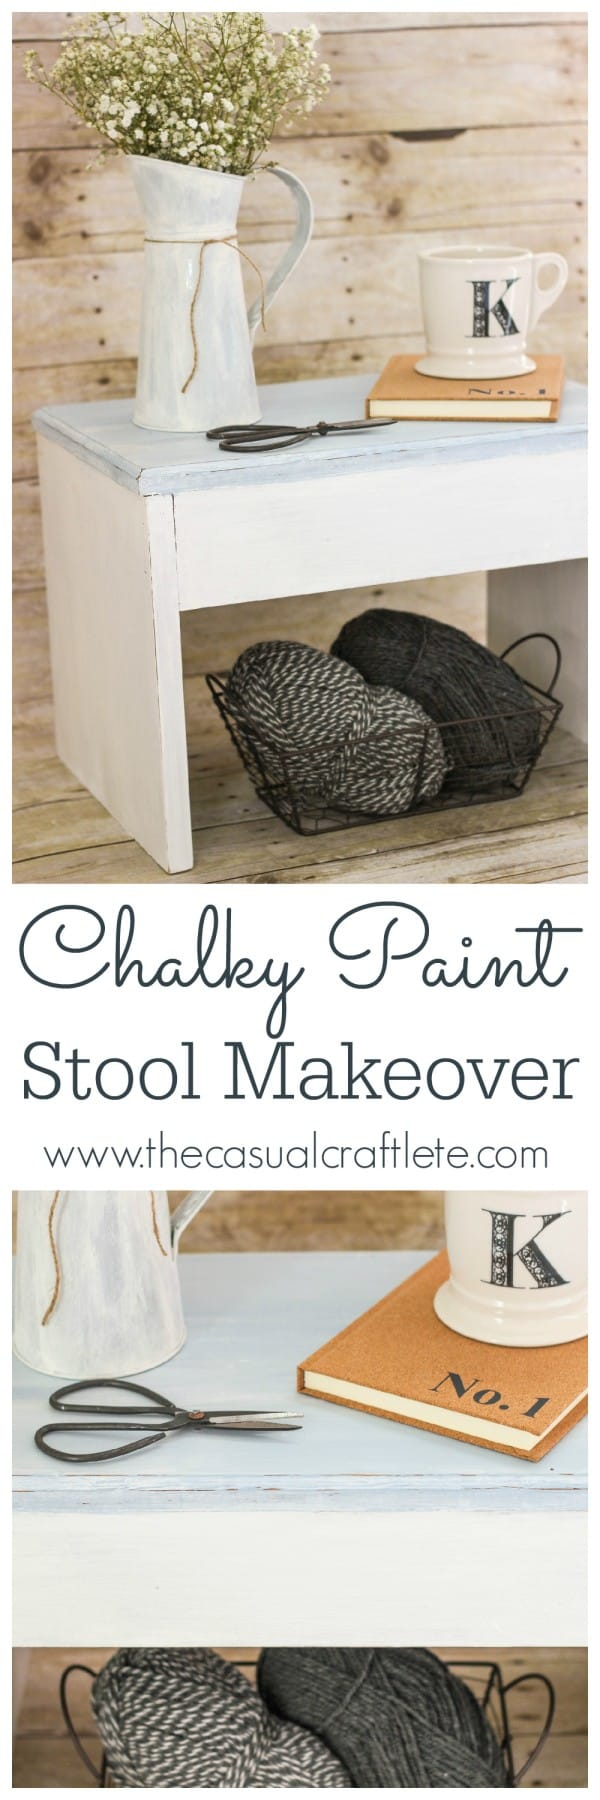 Chalky Paint Stool Makeover using DecoArt Americana Chalky Finish Paints